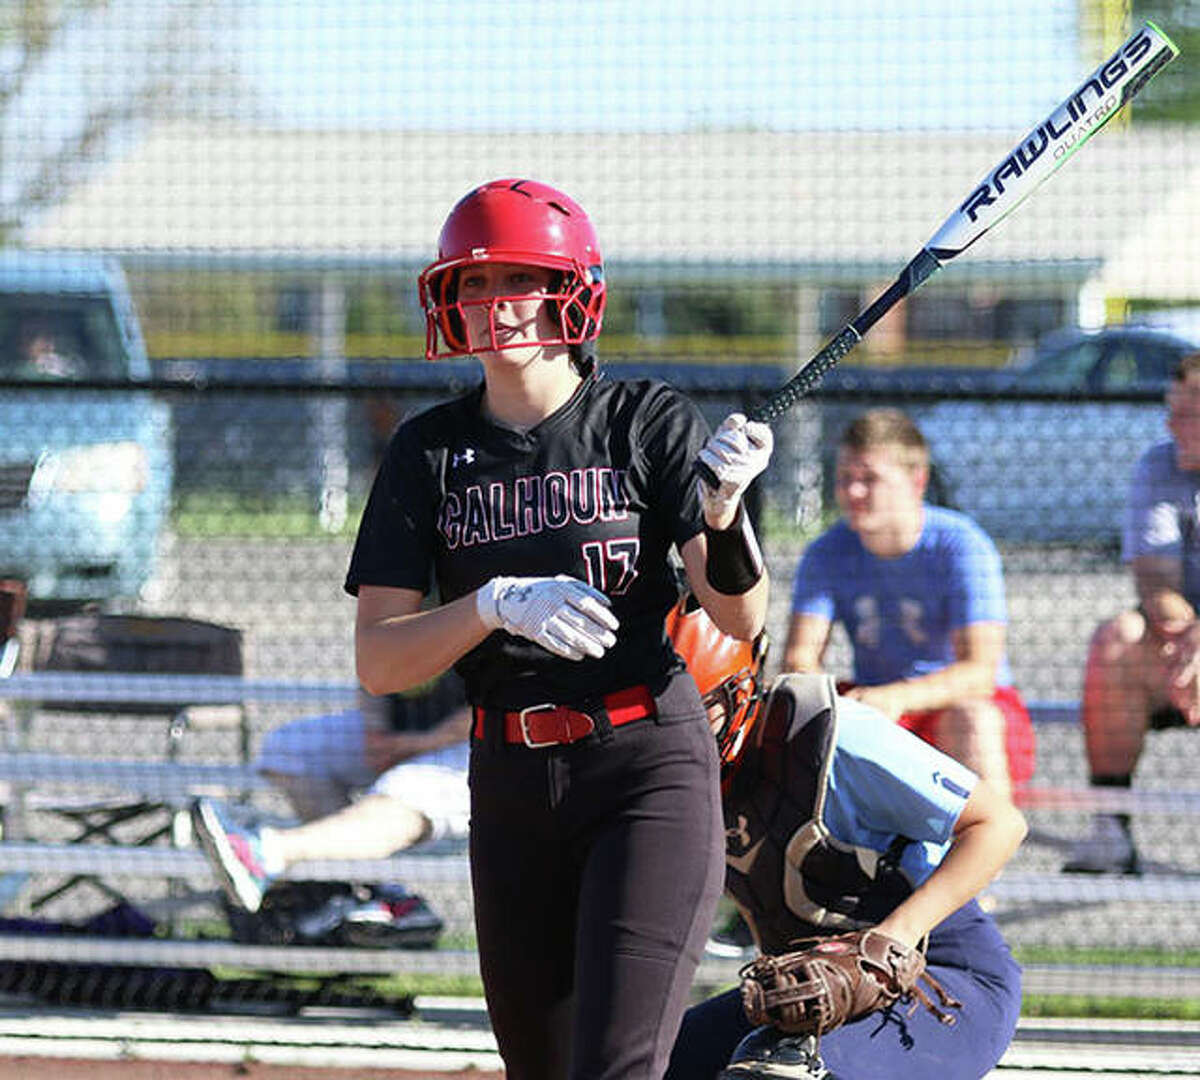 Calhoun's Elly Pohlman looks to her coach during an at-bat in an April 30 game at Jersey. On Tuesday, Pohlman's focus was on pitching during her complete-game win over Brussels in Hardin.